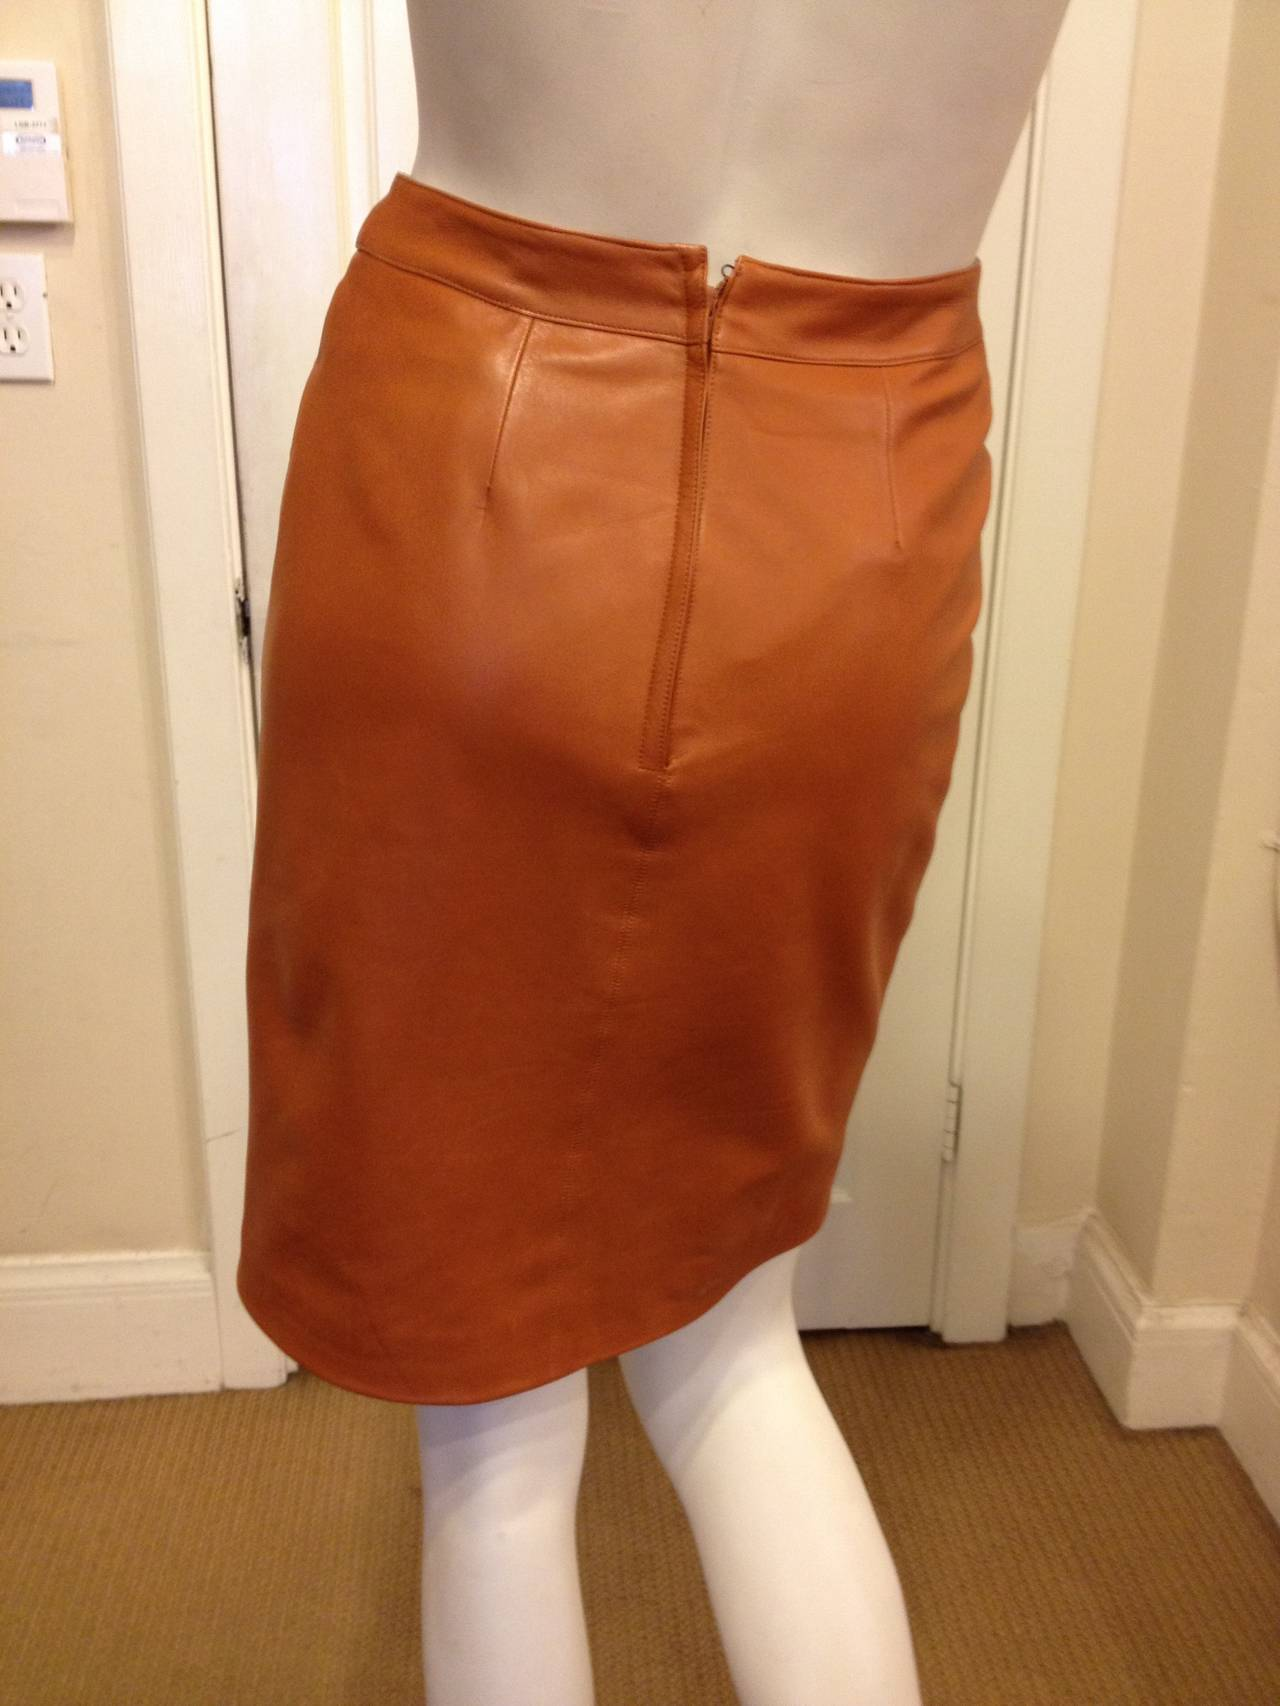 chanel caramel rust brown leather skirt at 1stdibs